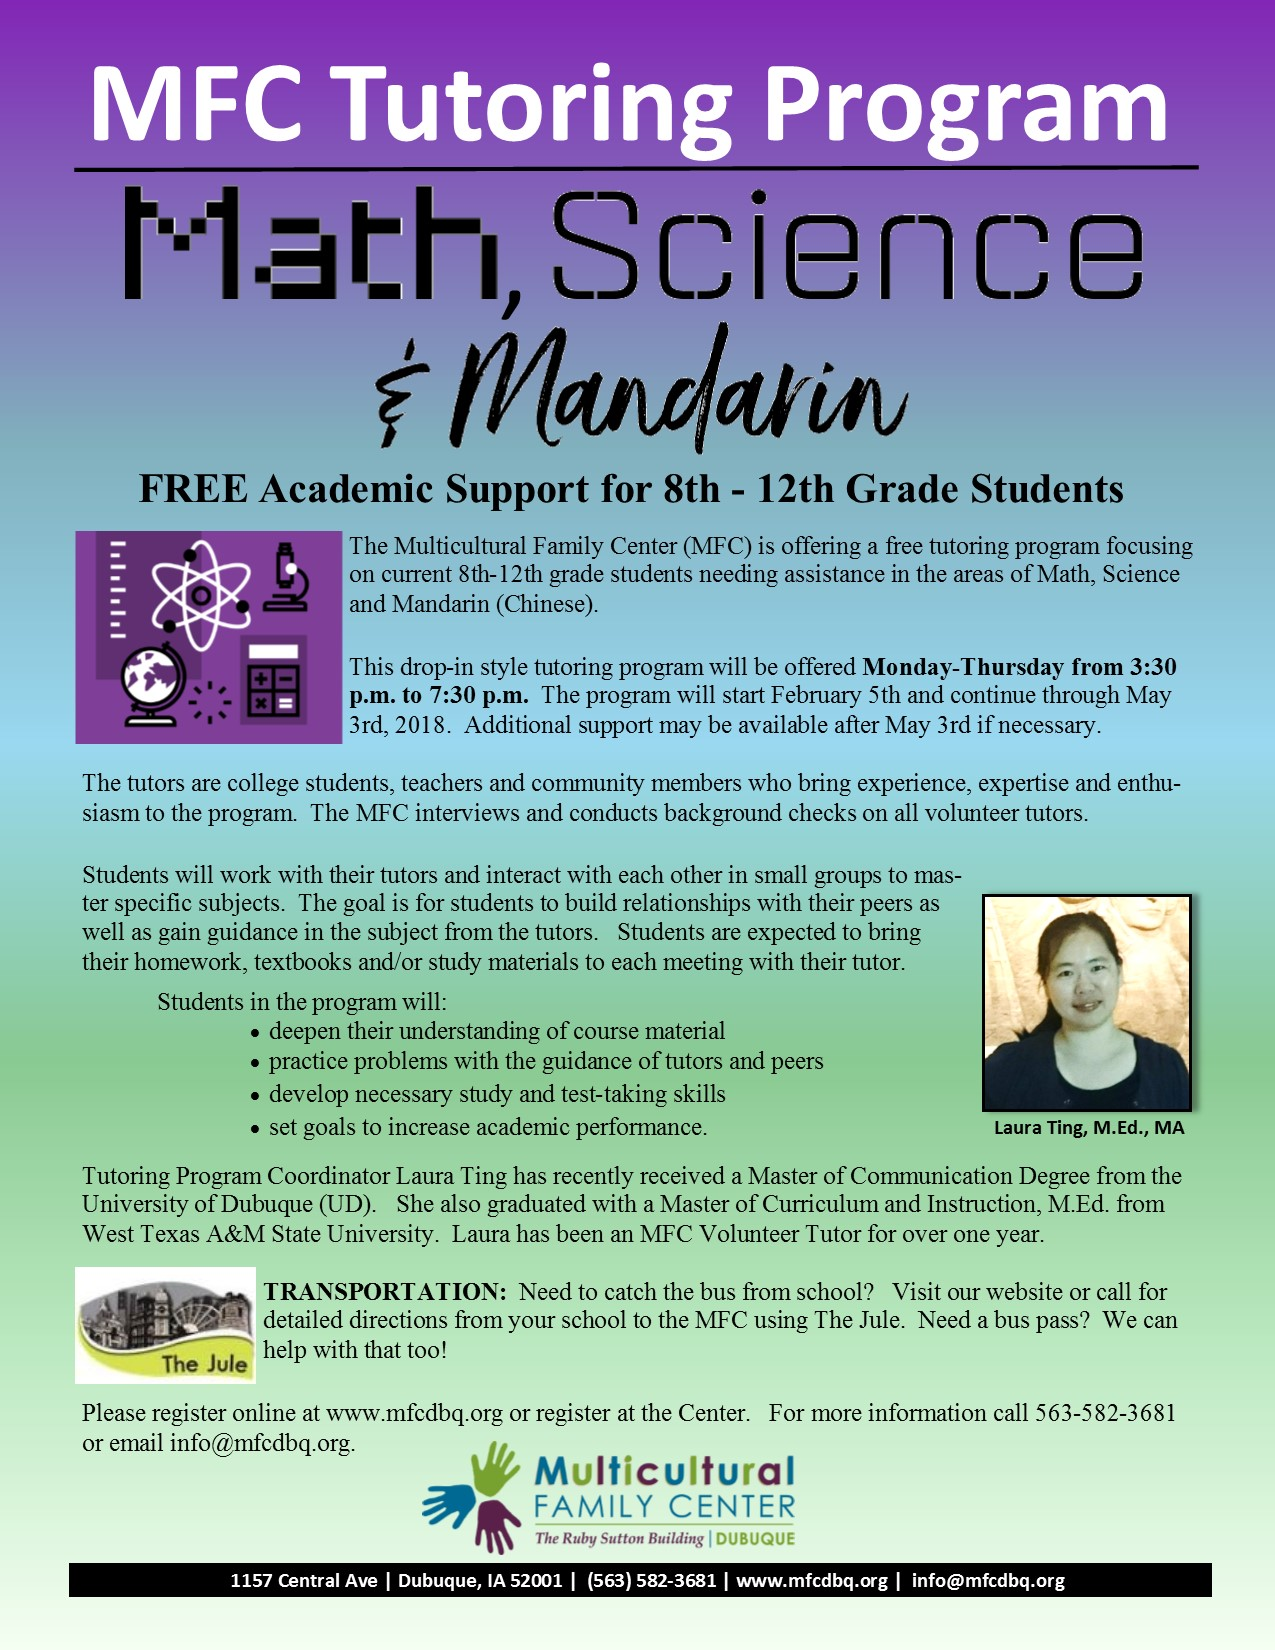 Math, Science & Mandarin Tuturing Program | Multicultural Family Center